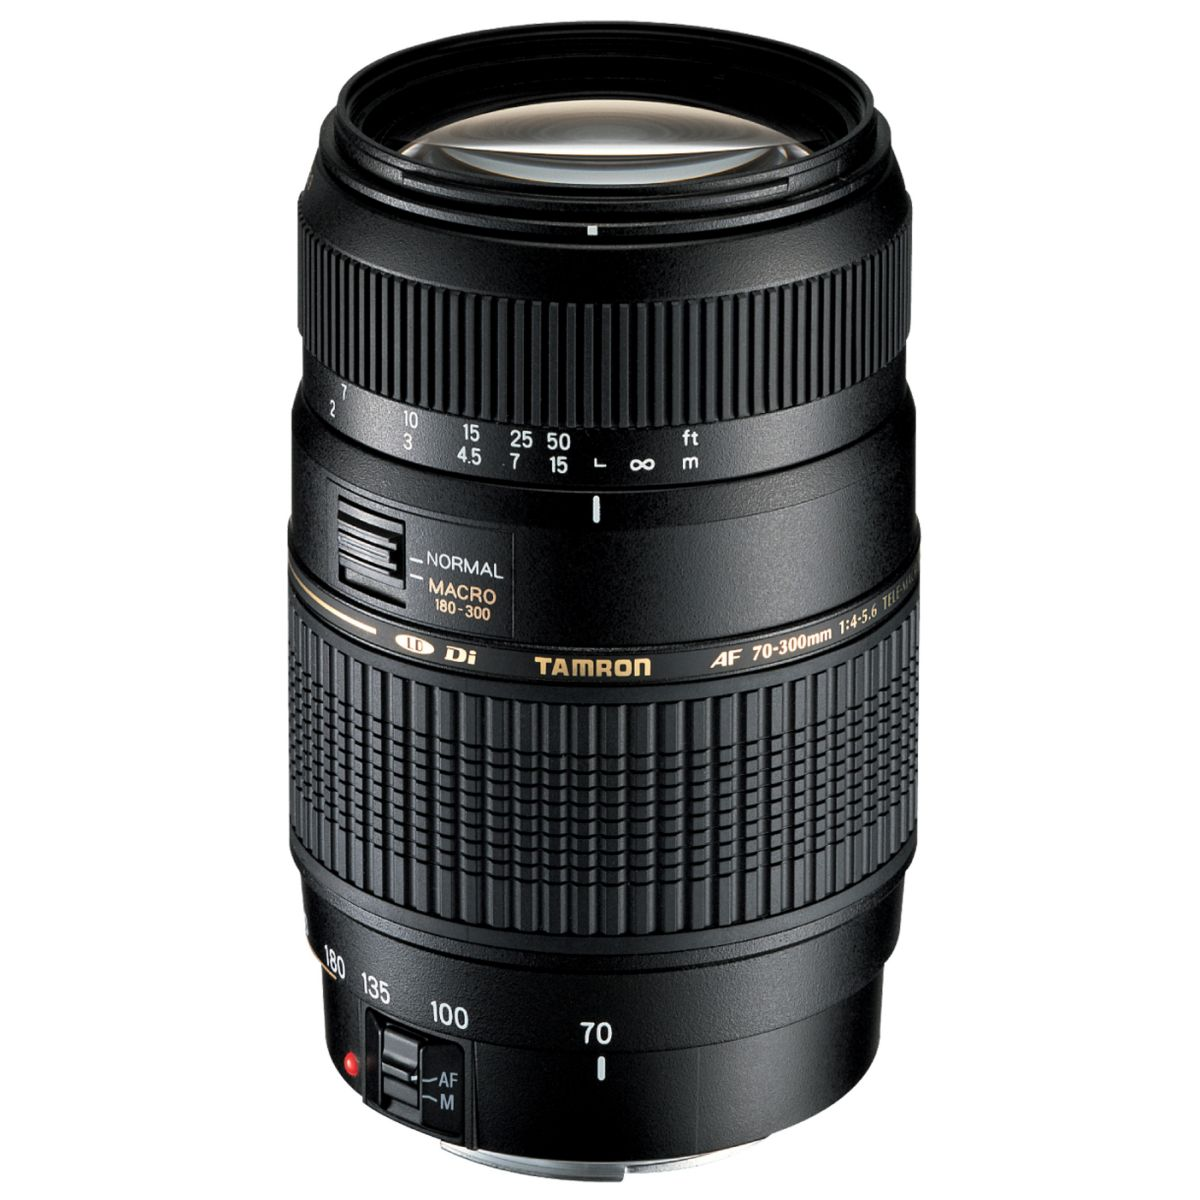 Objectif pour Reflex TAMRON AF 70-300mm f/4-5.6 Di LD IF 1:2 S...